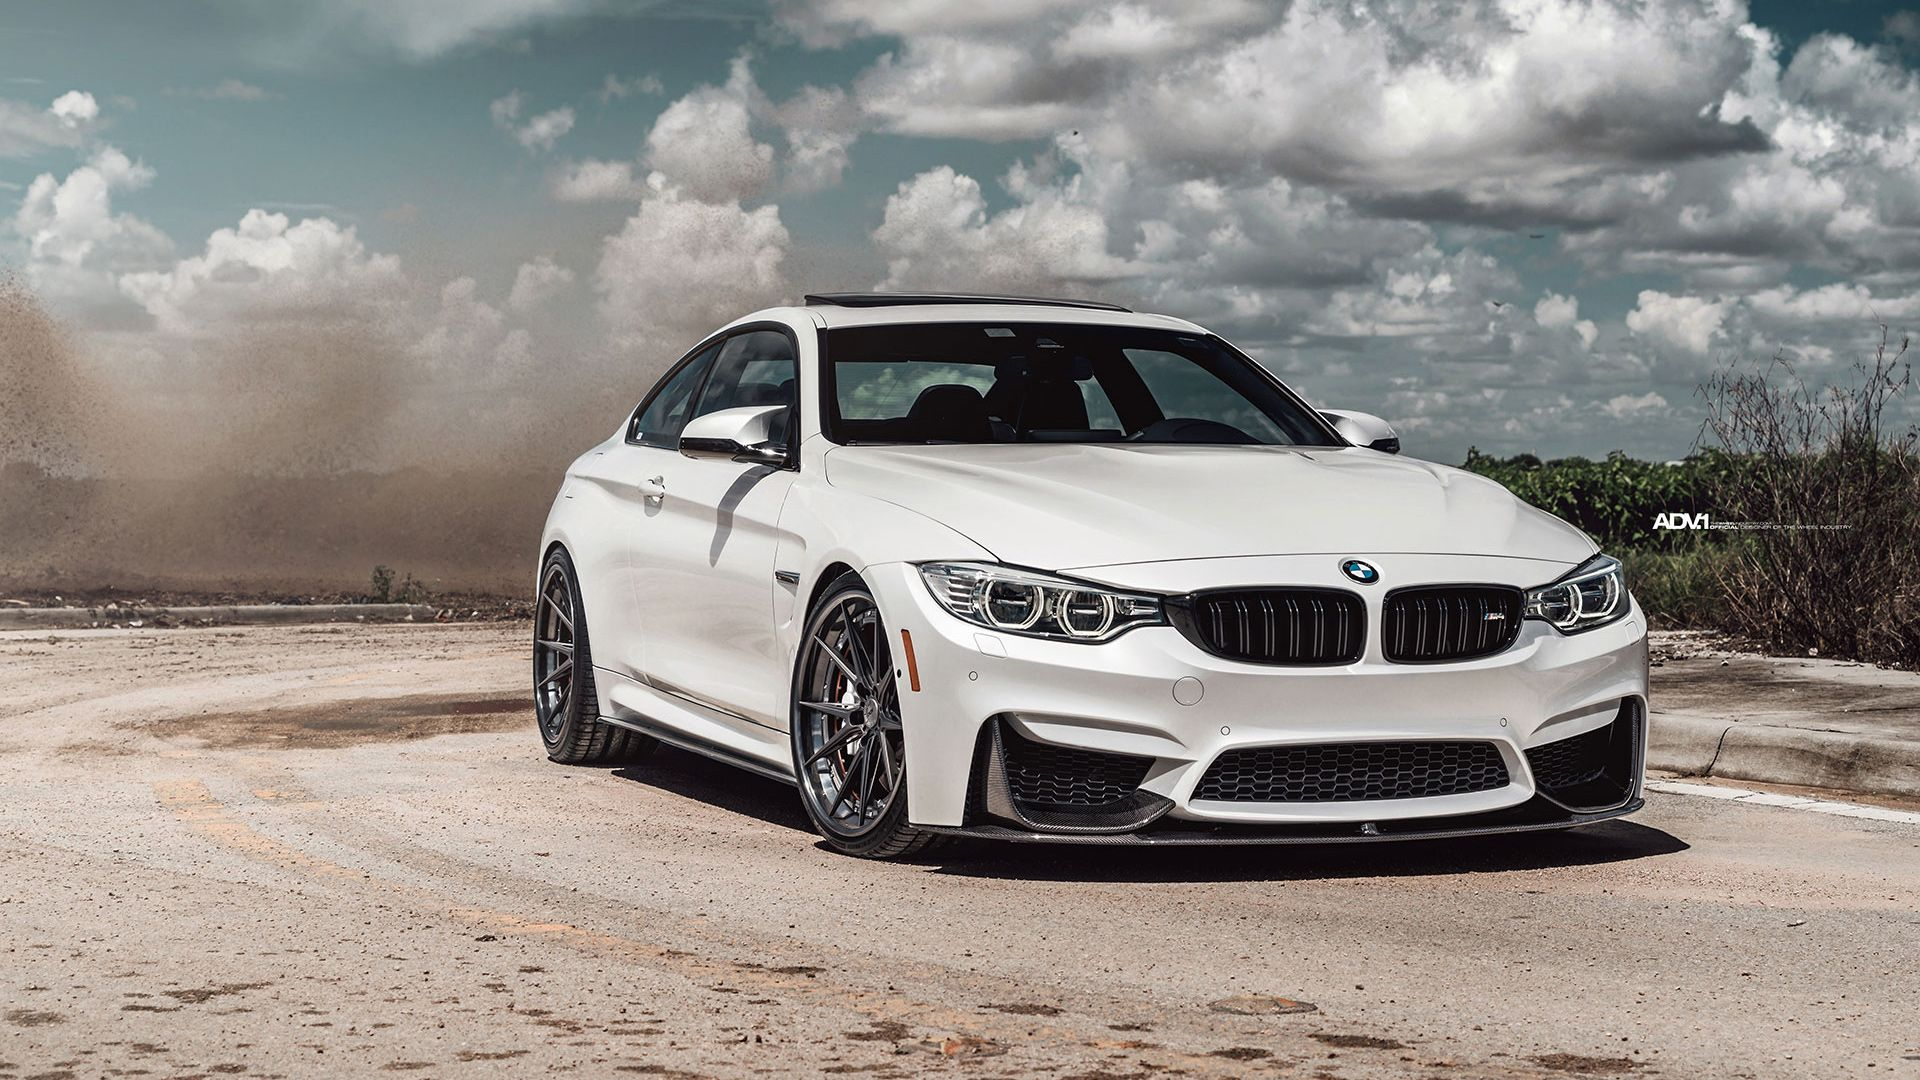 4k cars wallpapers,pictures,images,photos for desktop & White Bmw Wallpapers Top Free White Bmw Backgrounds Wallpaperaccess